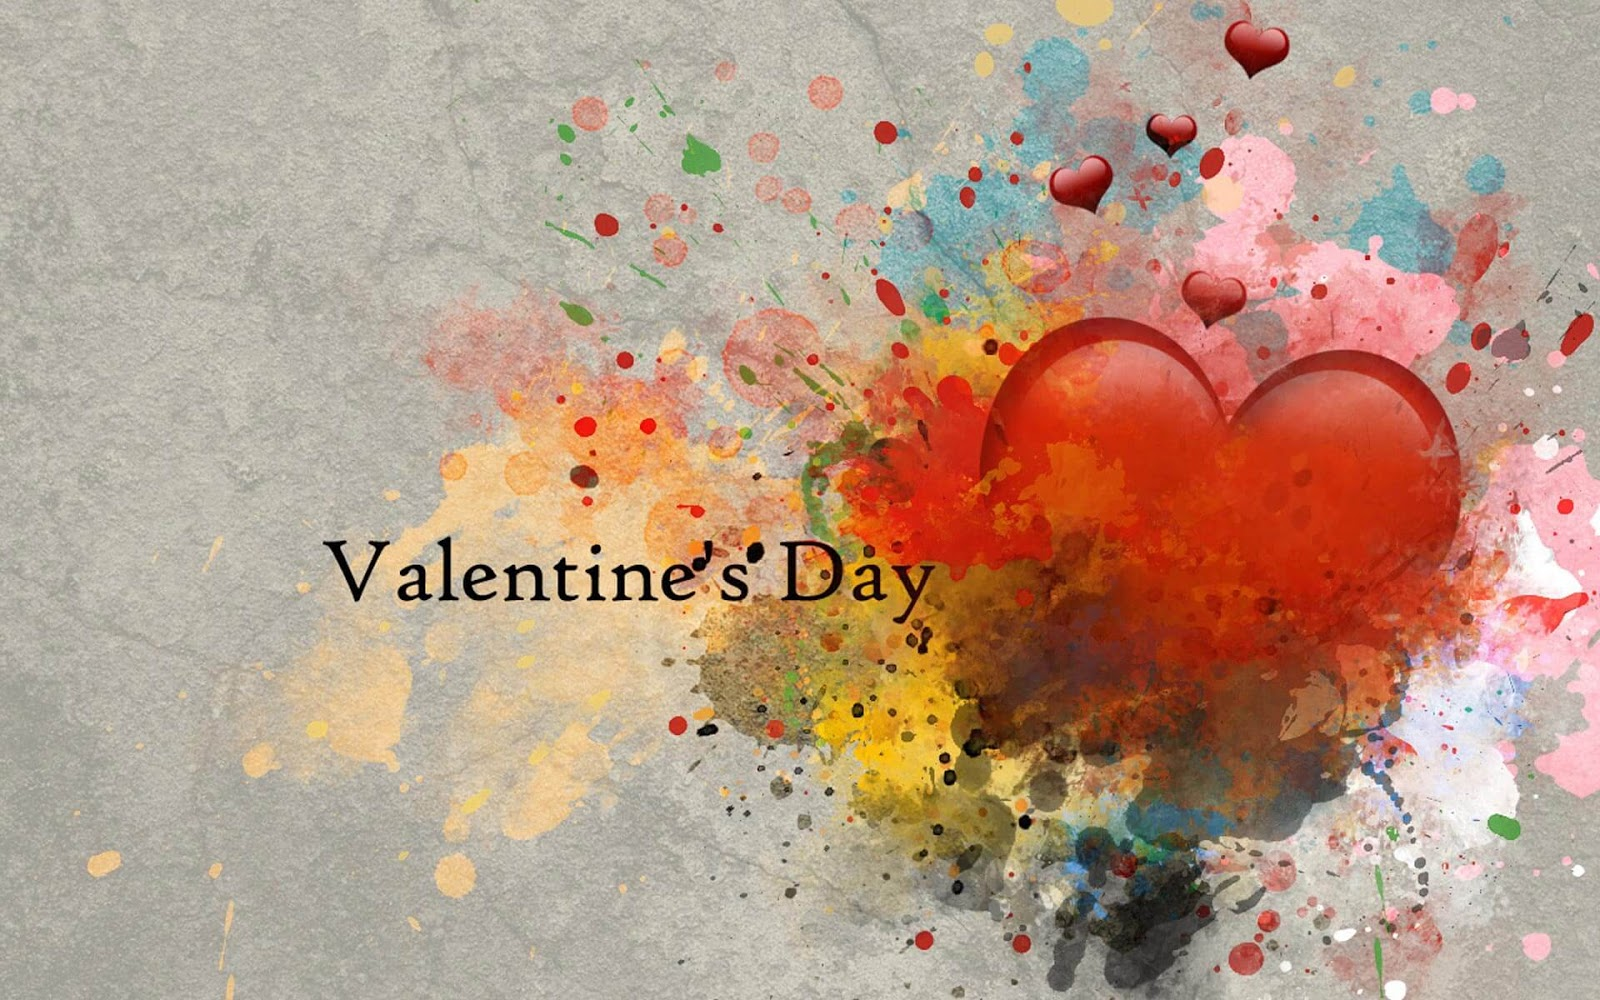 Happy Valentines day 2019 Status Message For Whatsapp, Facebook